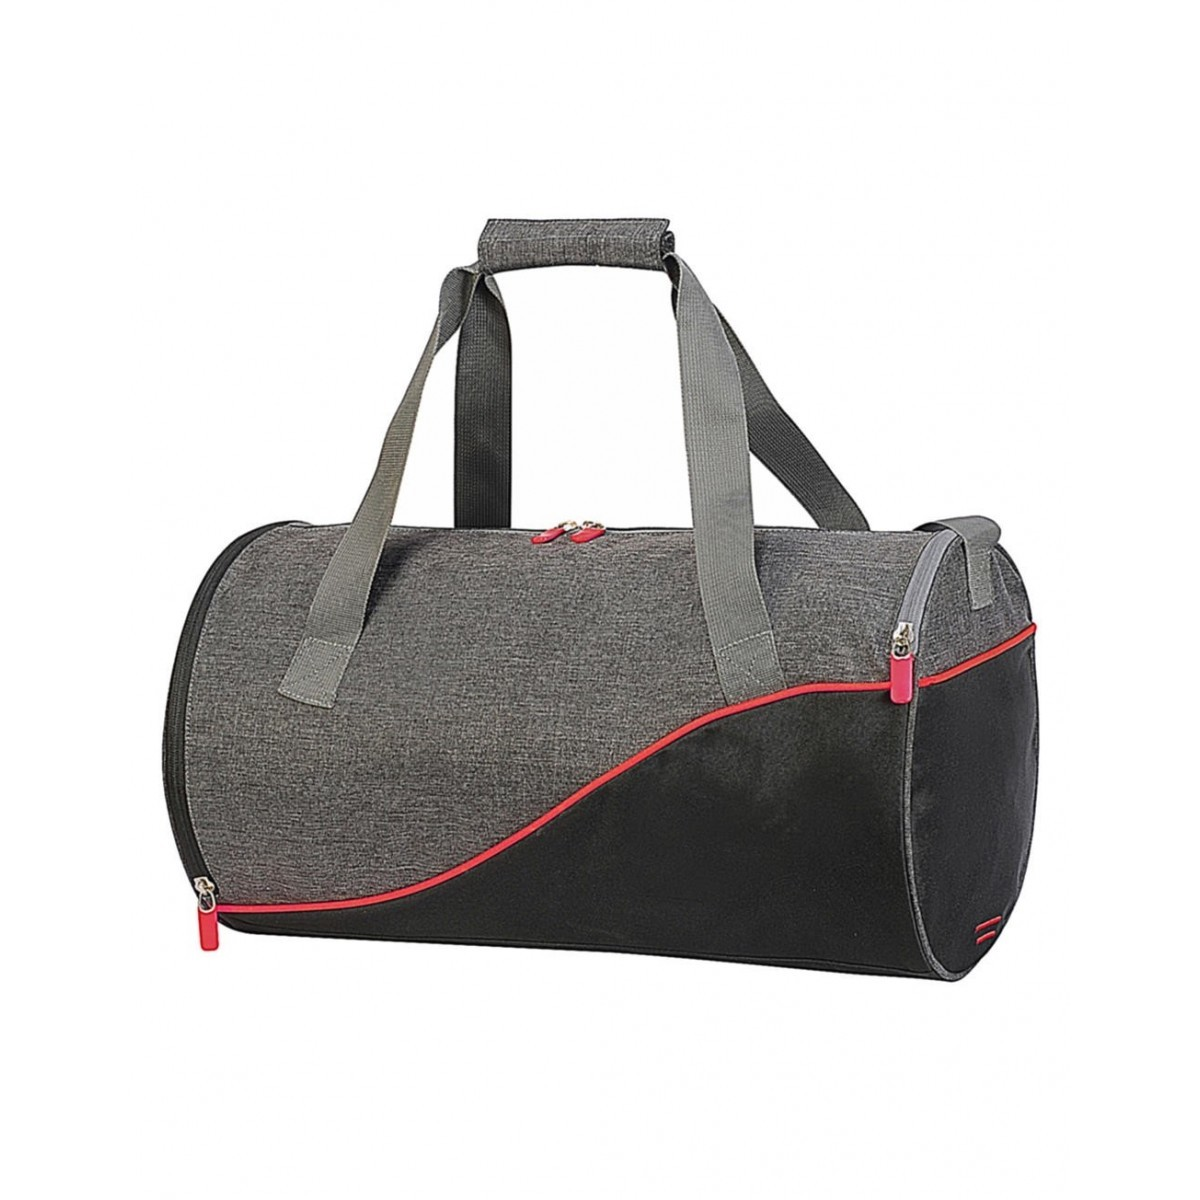 Andros Daily Sports Bag